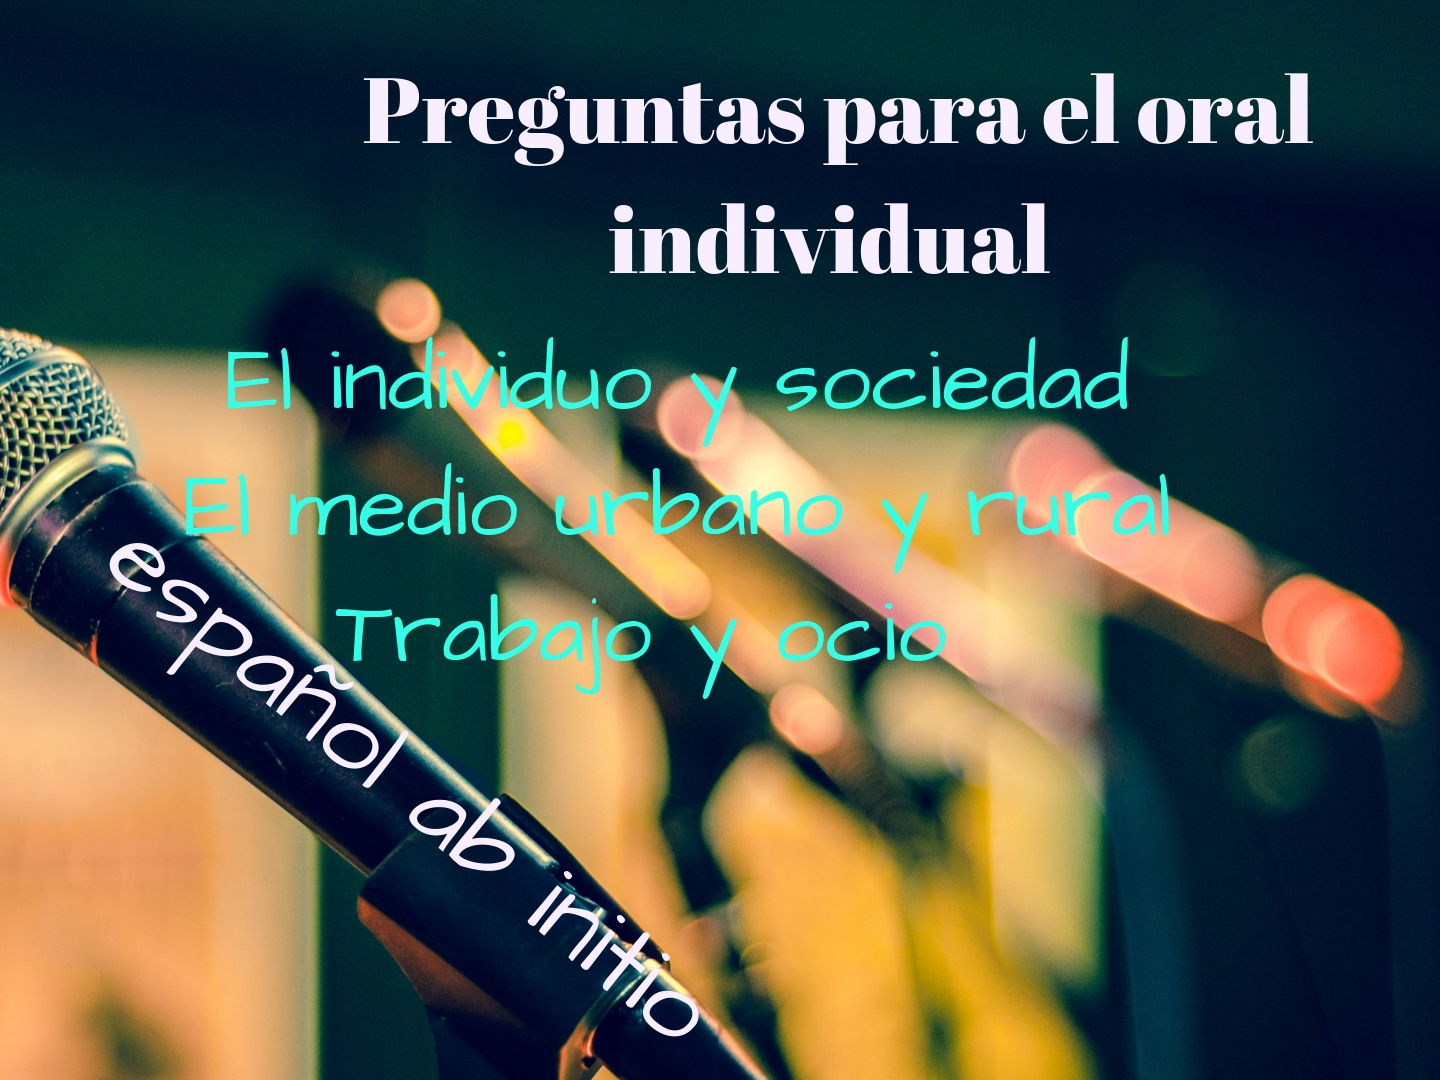 ESPAÑOL AB INITIO PREGUNTAS PARA EL ORAL INDIVIDUAL. SPANISH AB INITIO QUESTIONS FOR THE INDIVIDUAL ORAL.